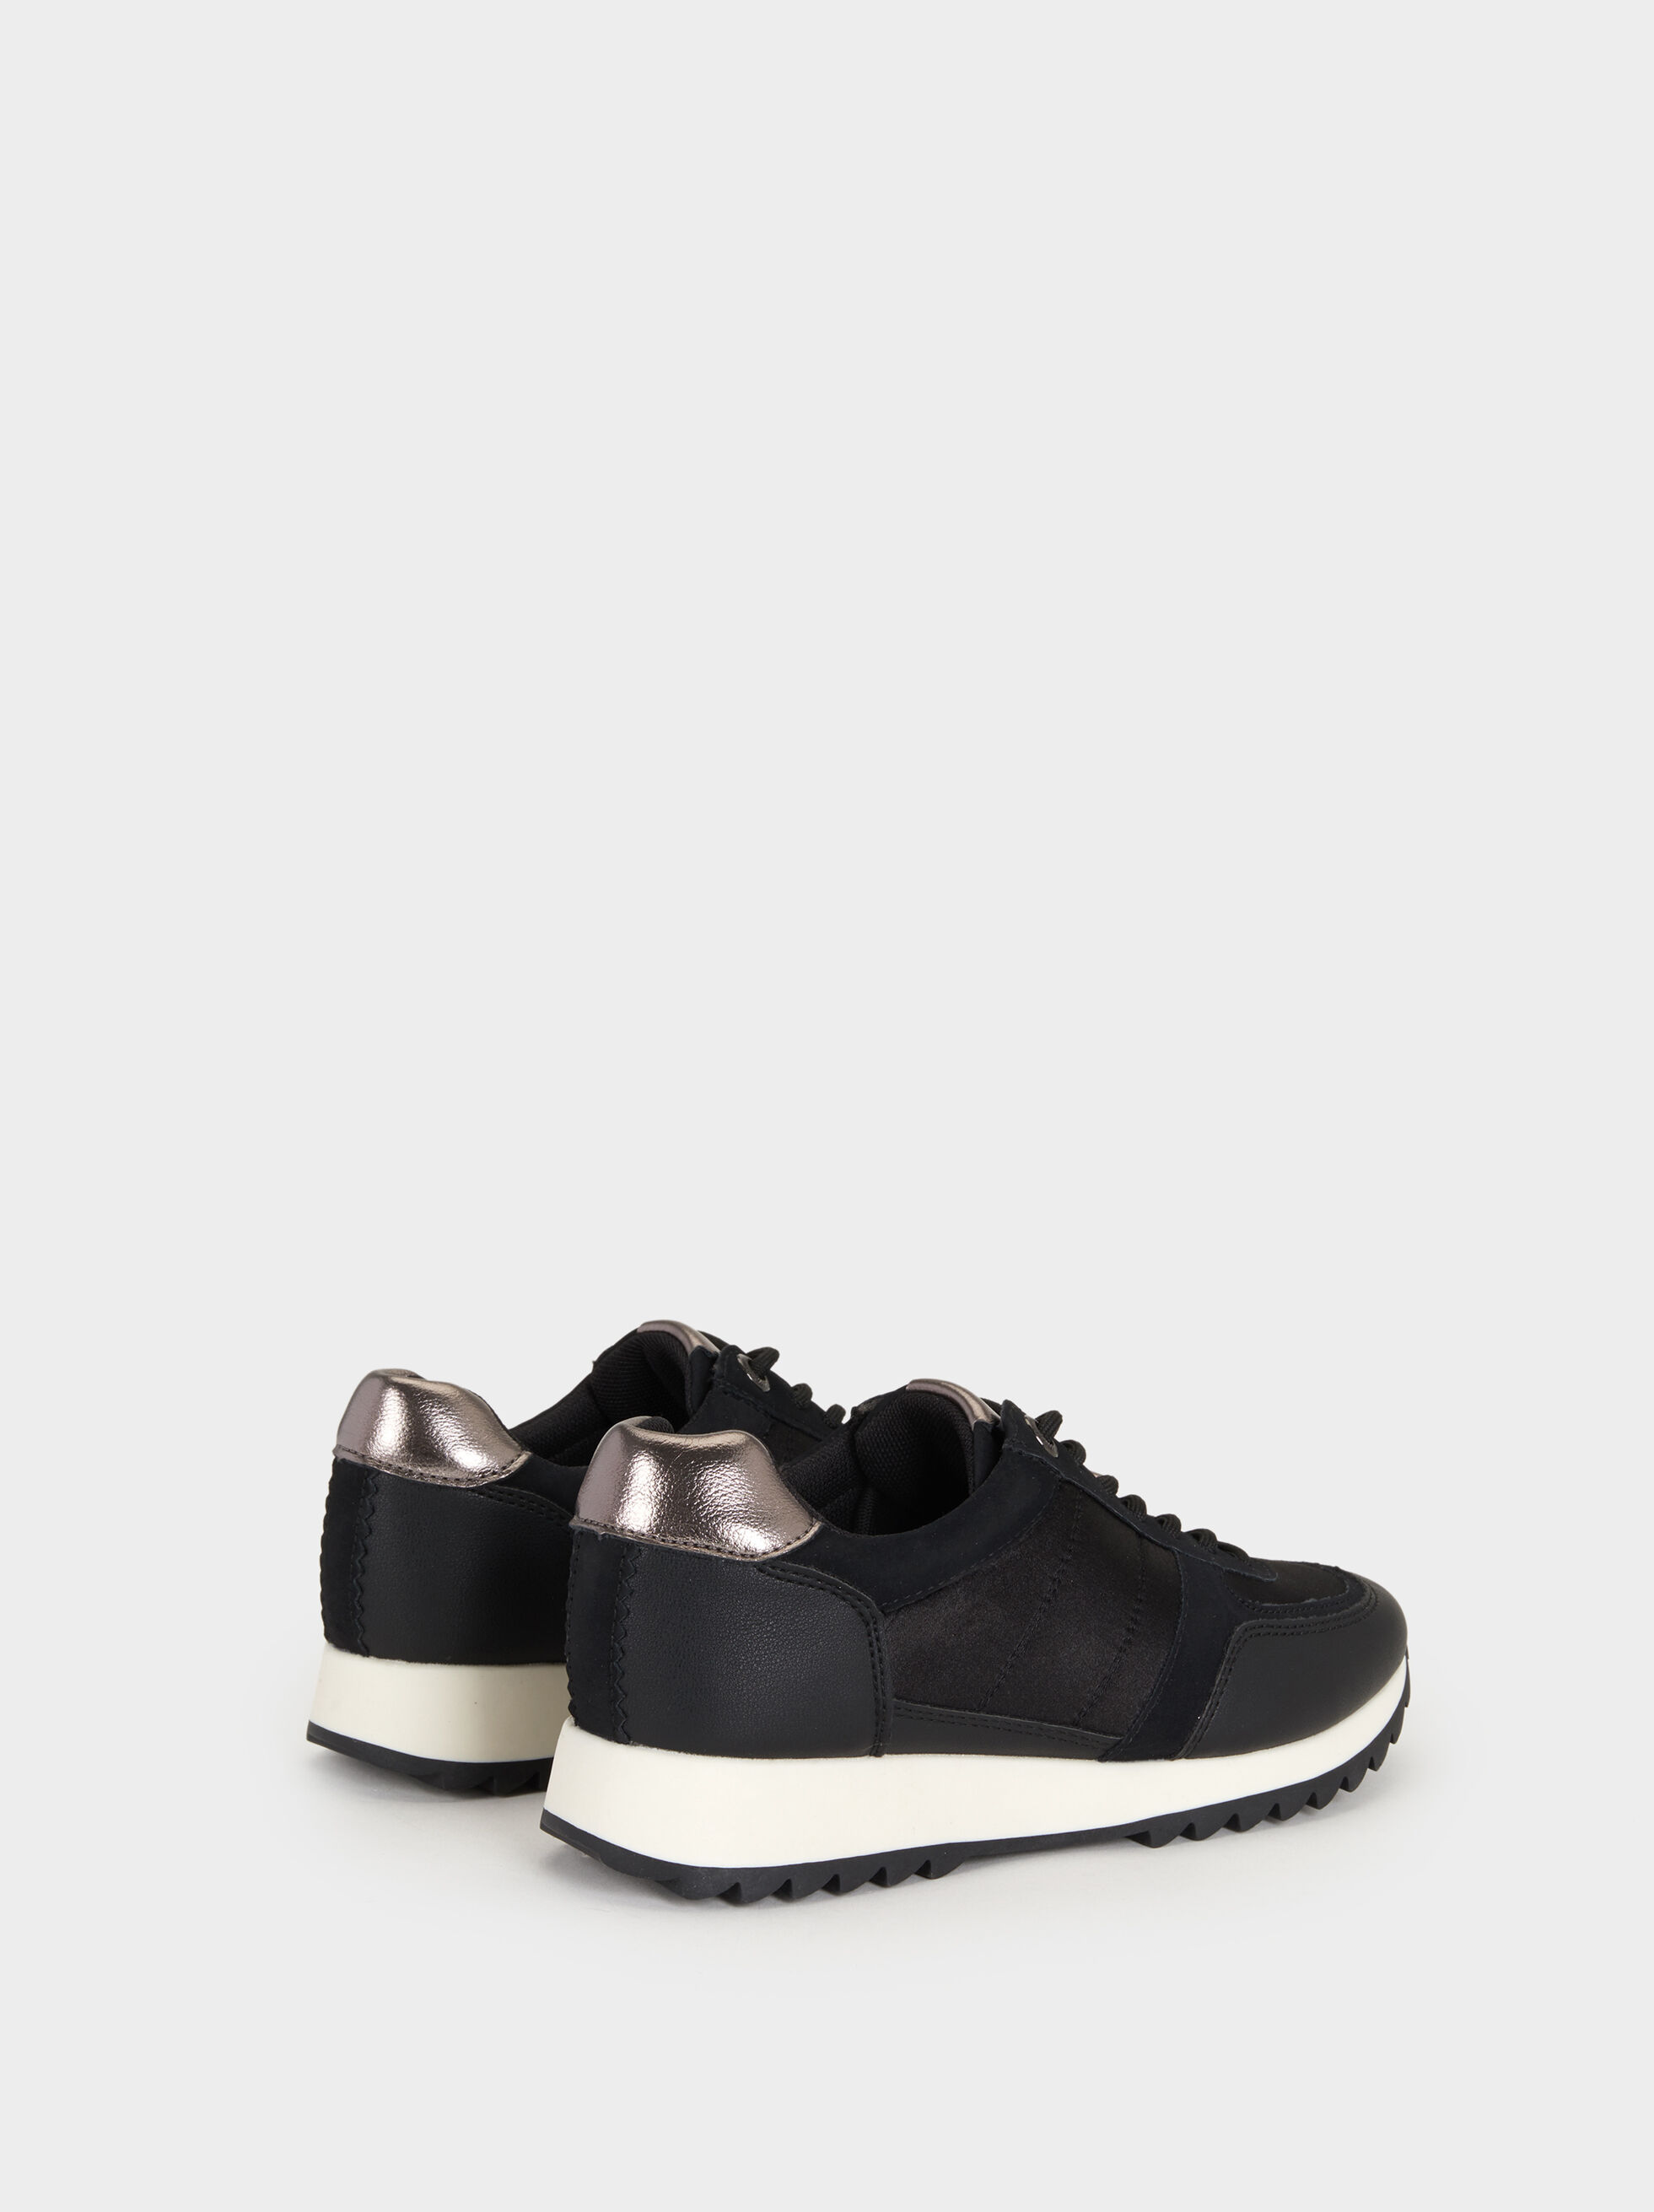 Trainers With Contrast Sole, Black, hi-res